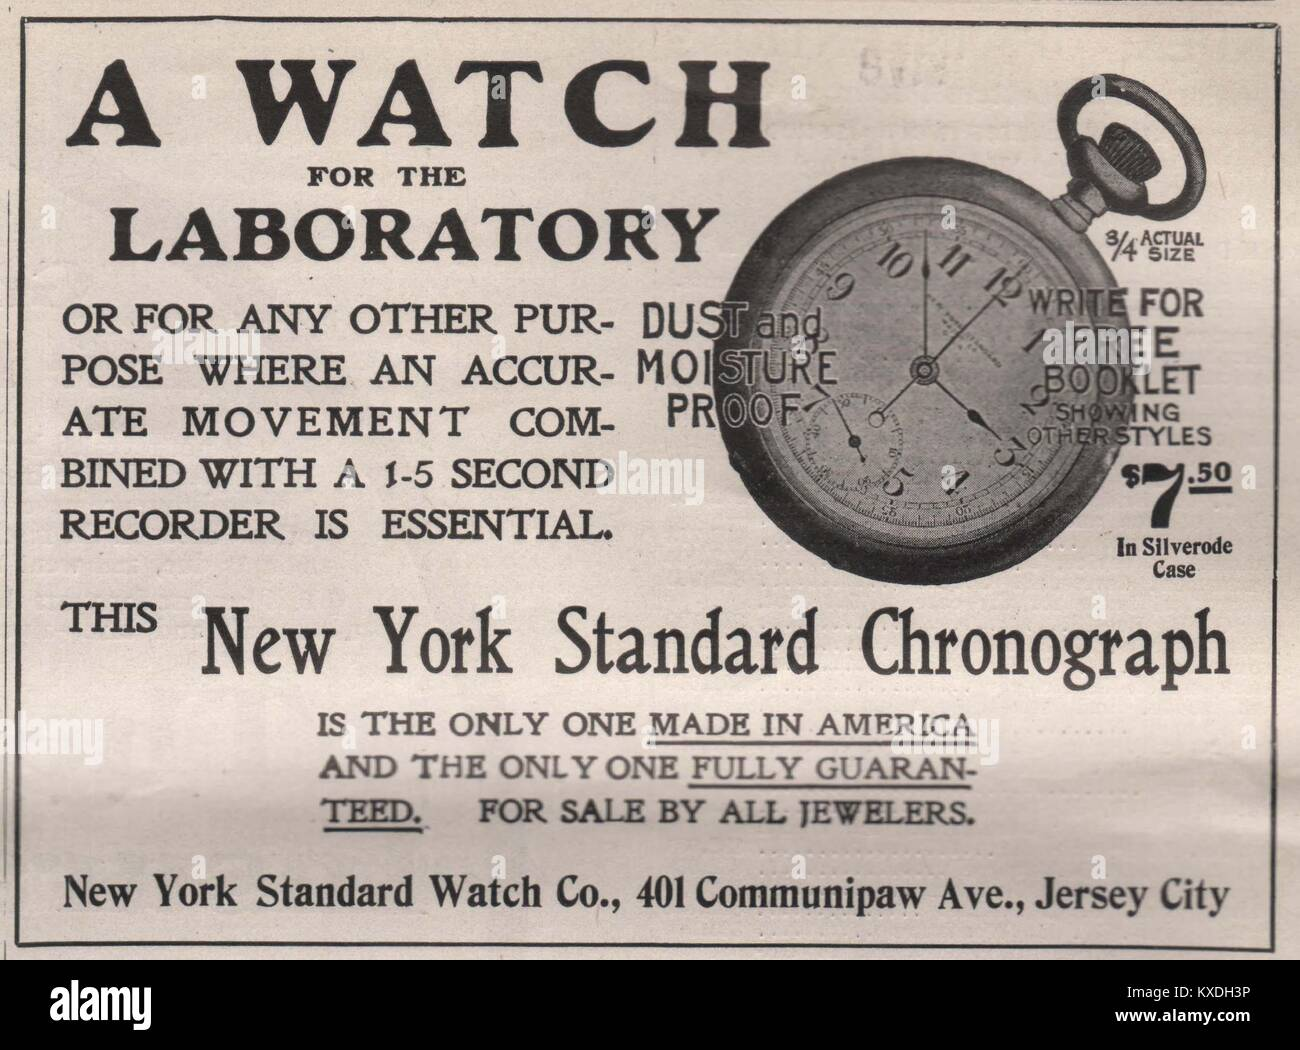 'A Watch for Laboratory' New York standard Chronograph - New York standard watch Co., 401 Communipaw Av., - Stock Image